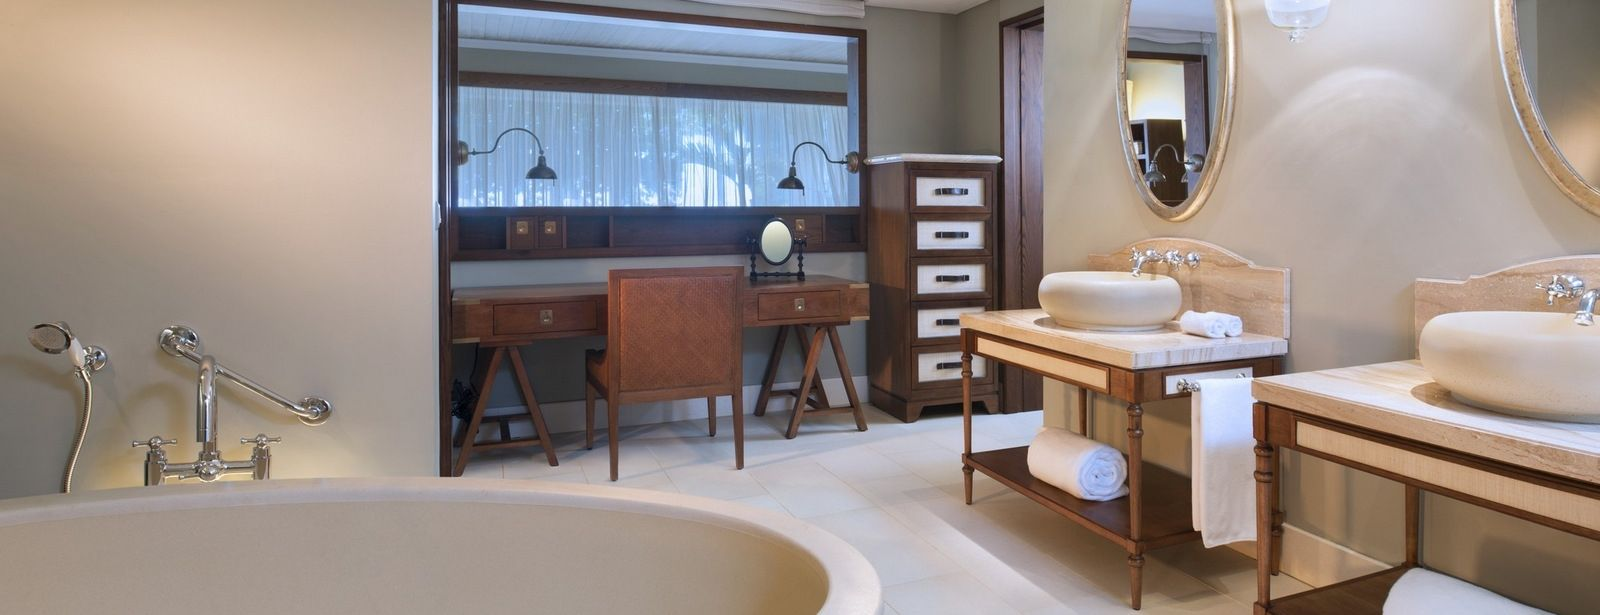 St. Regis Mauritius Junior Suite bathroom